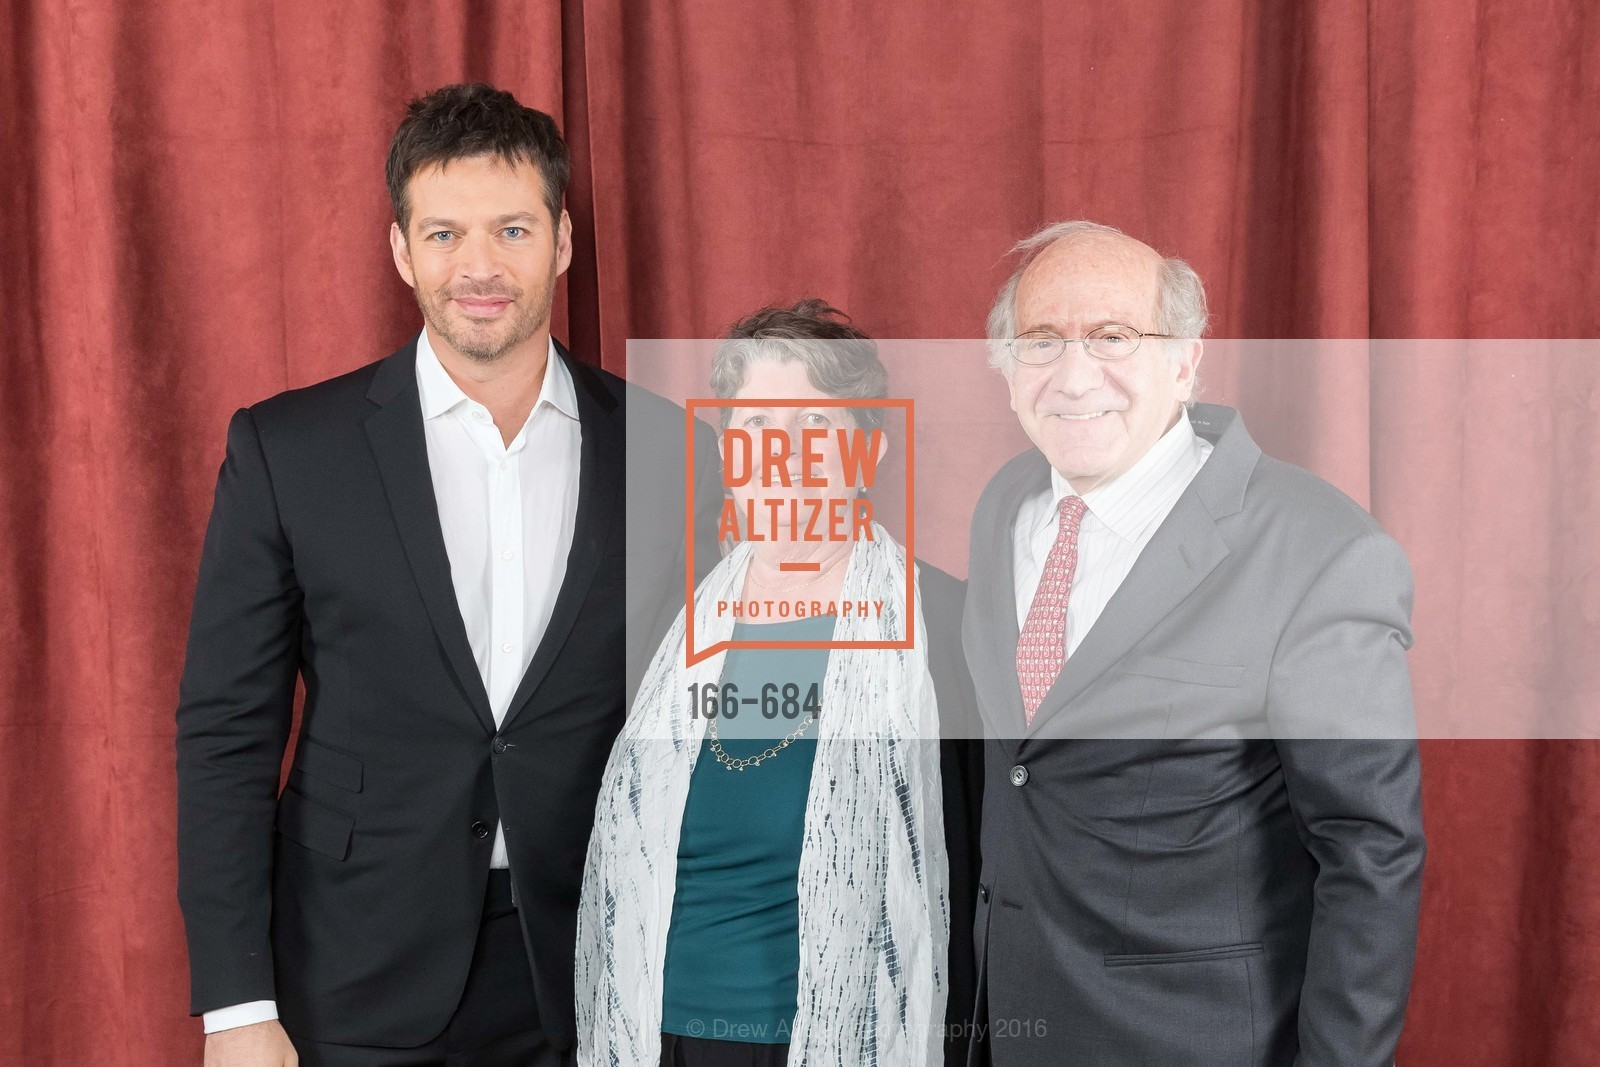 Harry Connick Jr., Deborah Berek, Jonathan Berek, Under One Umbrella, Sharon Heights Golf and Country Club, January 13th, 2016,Drew Altizer, Drew Altizer Photography, full-service agency, private events, San Francisco photographer, photographer california